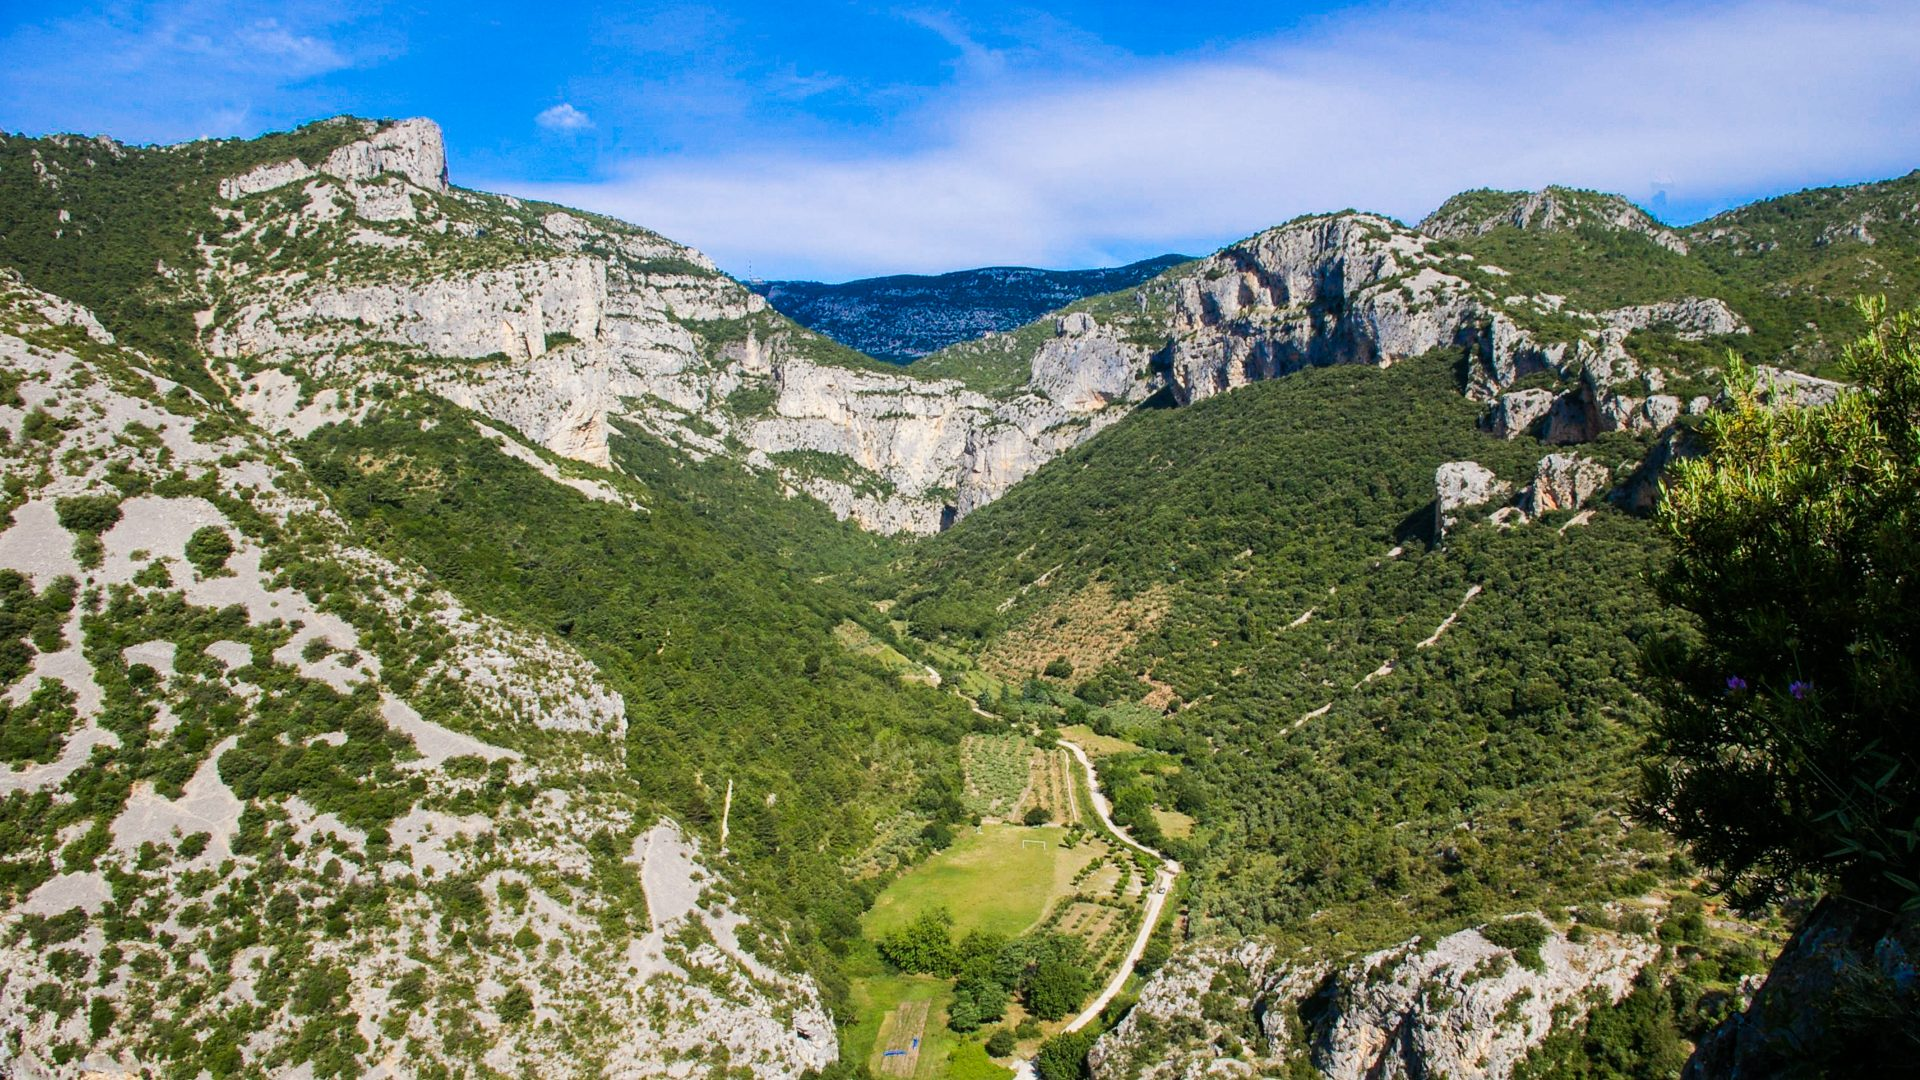 Aerial view of green mountains in the Vallée de l'Hérault: kayaking in France